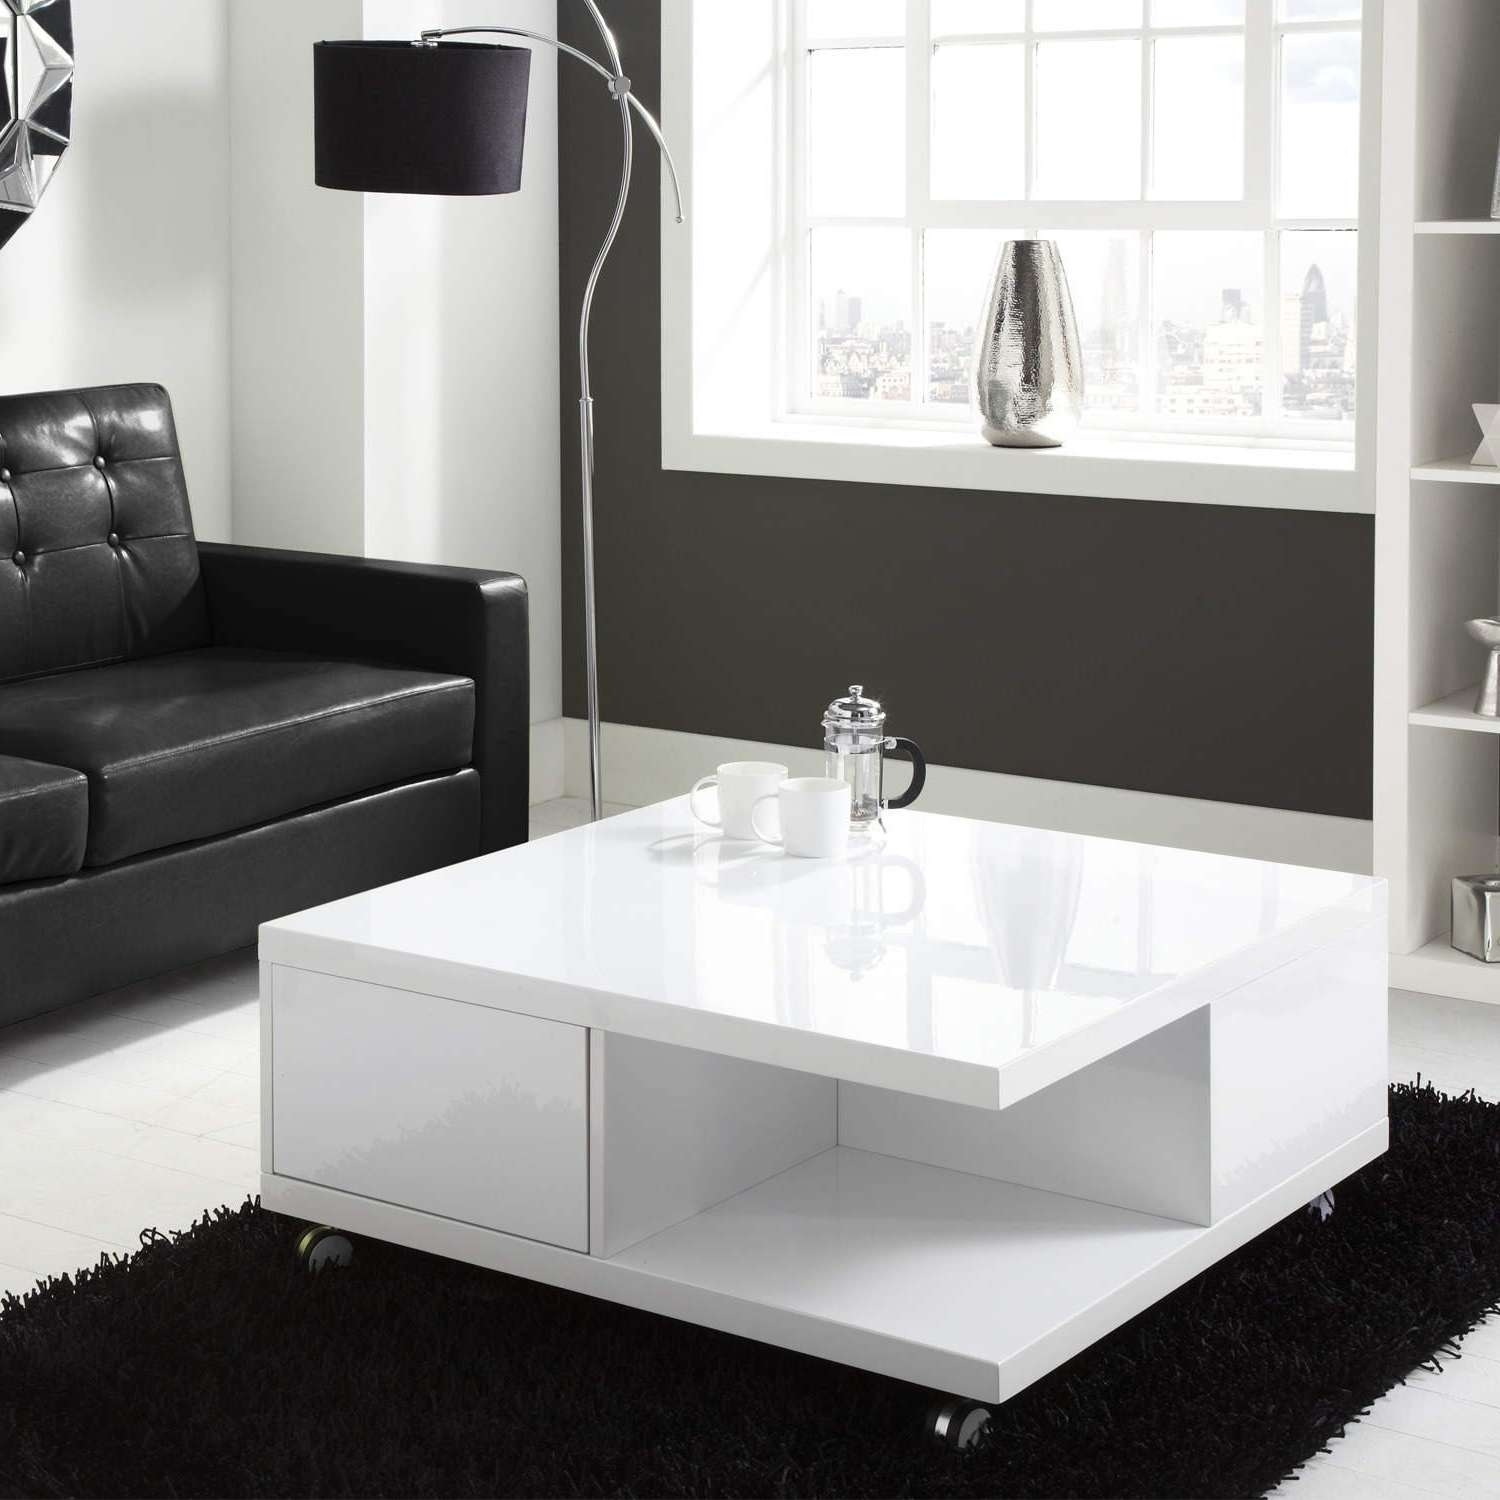 Coffee Tables : Storage Table High Gloss White Coffee With Drawers In Most Recently Released High Gloss Coffee Tables (View 4 of 20)